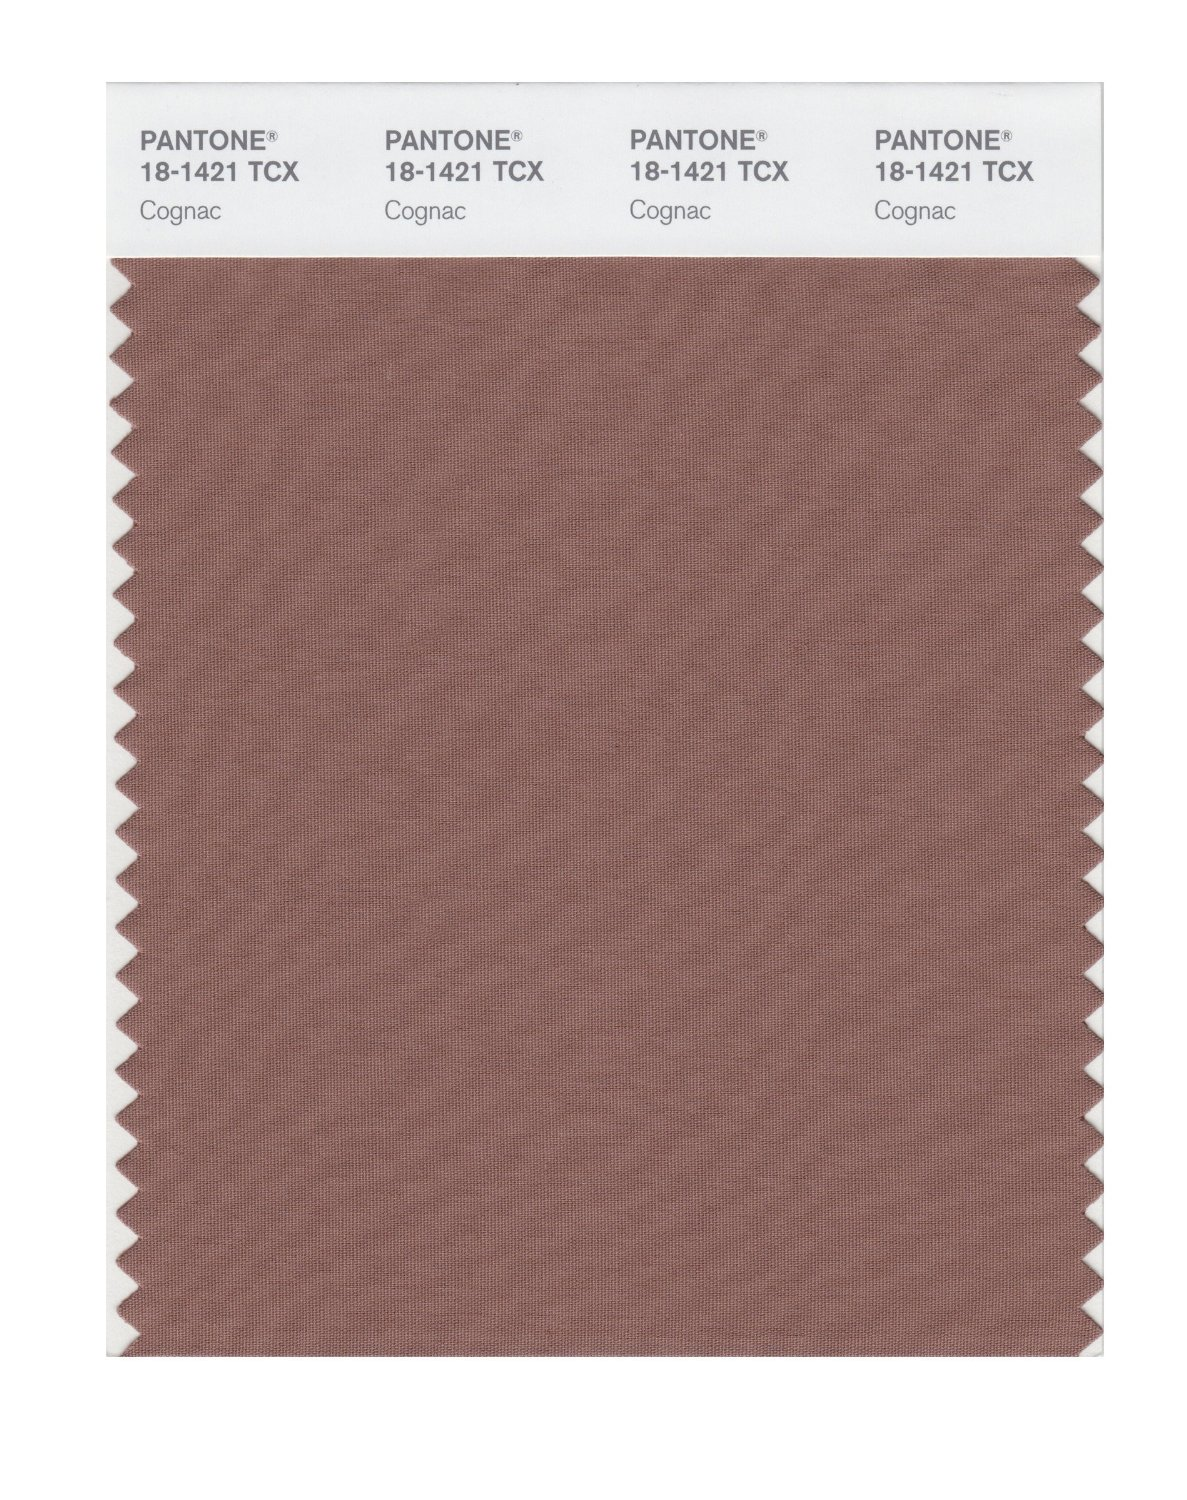 Pantone Smart Swatch 18-1421 Cognac